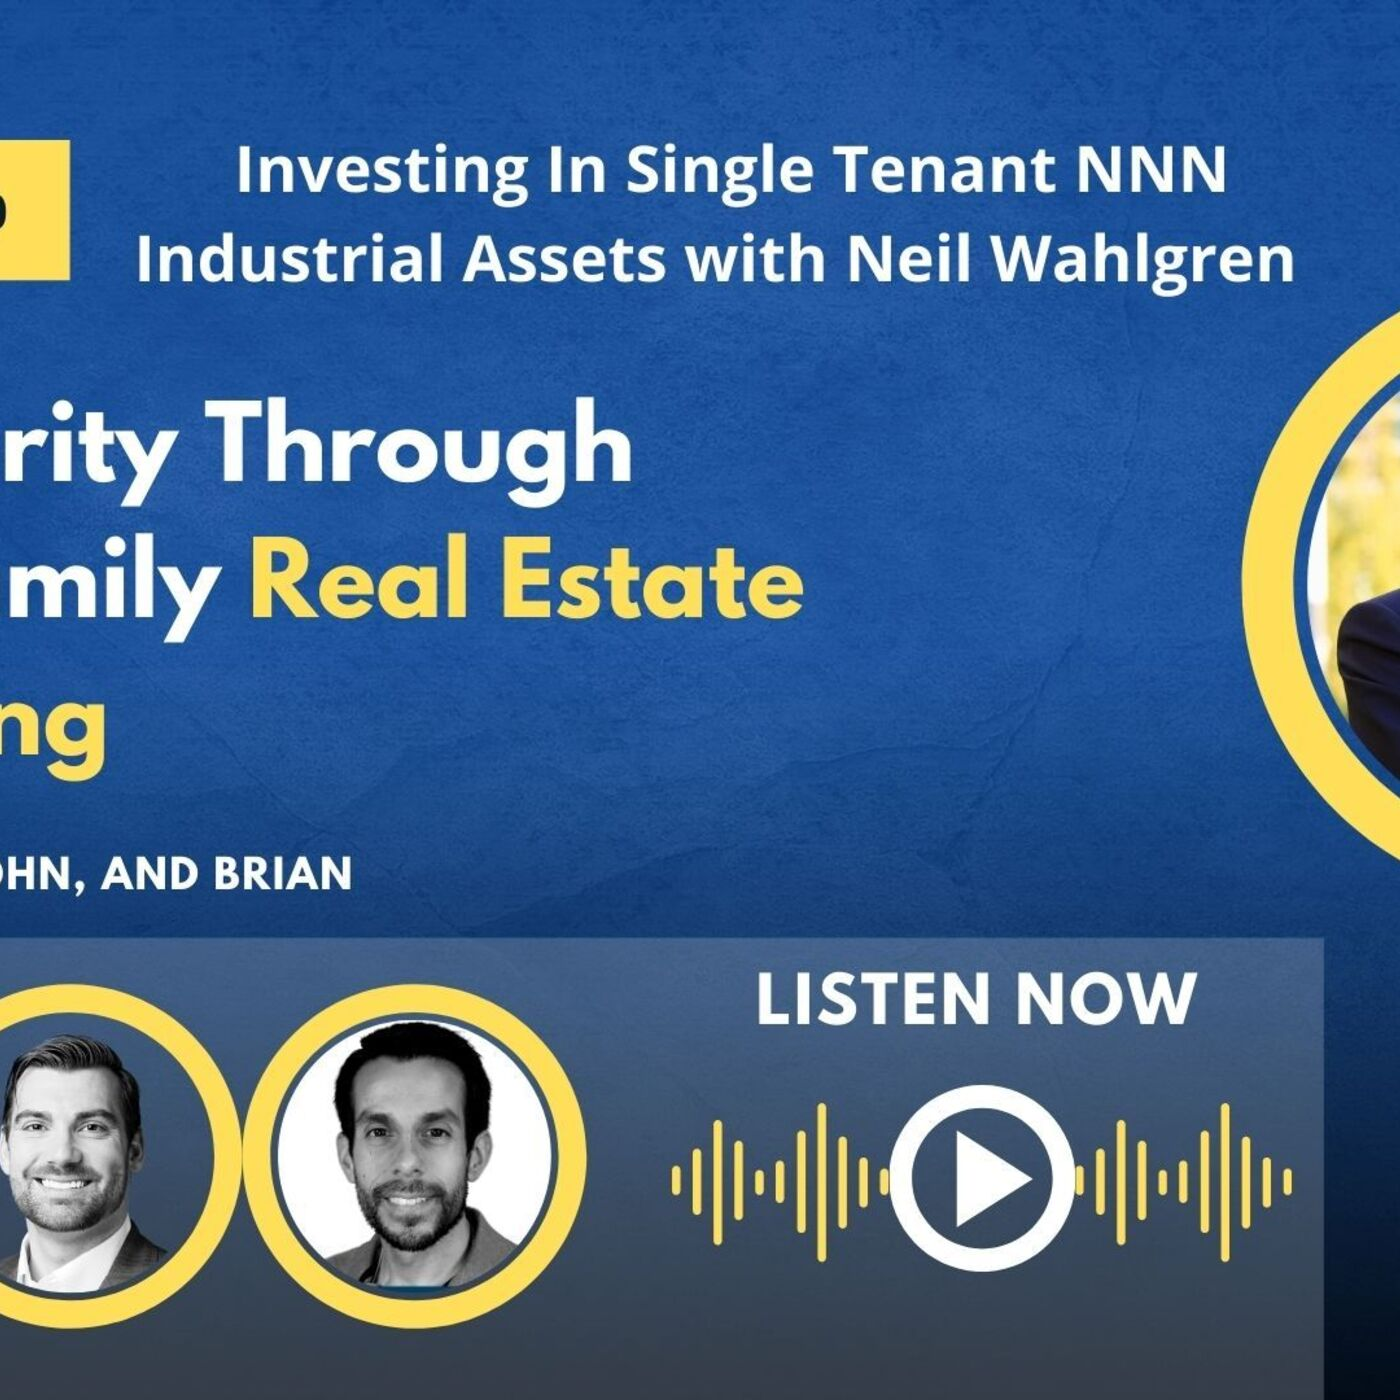 Investing in Single Tenant NNN Industrial Assets with Neil Wahlgren